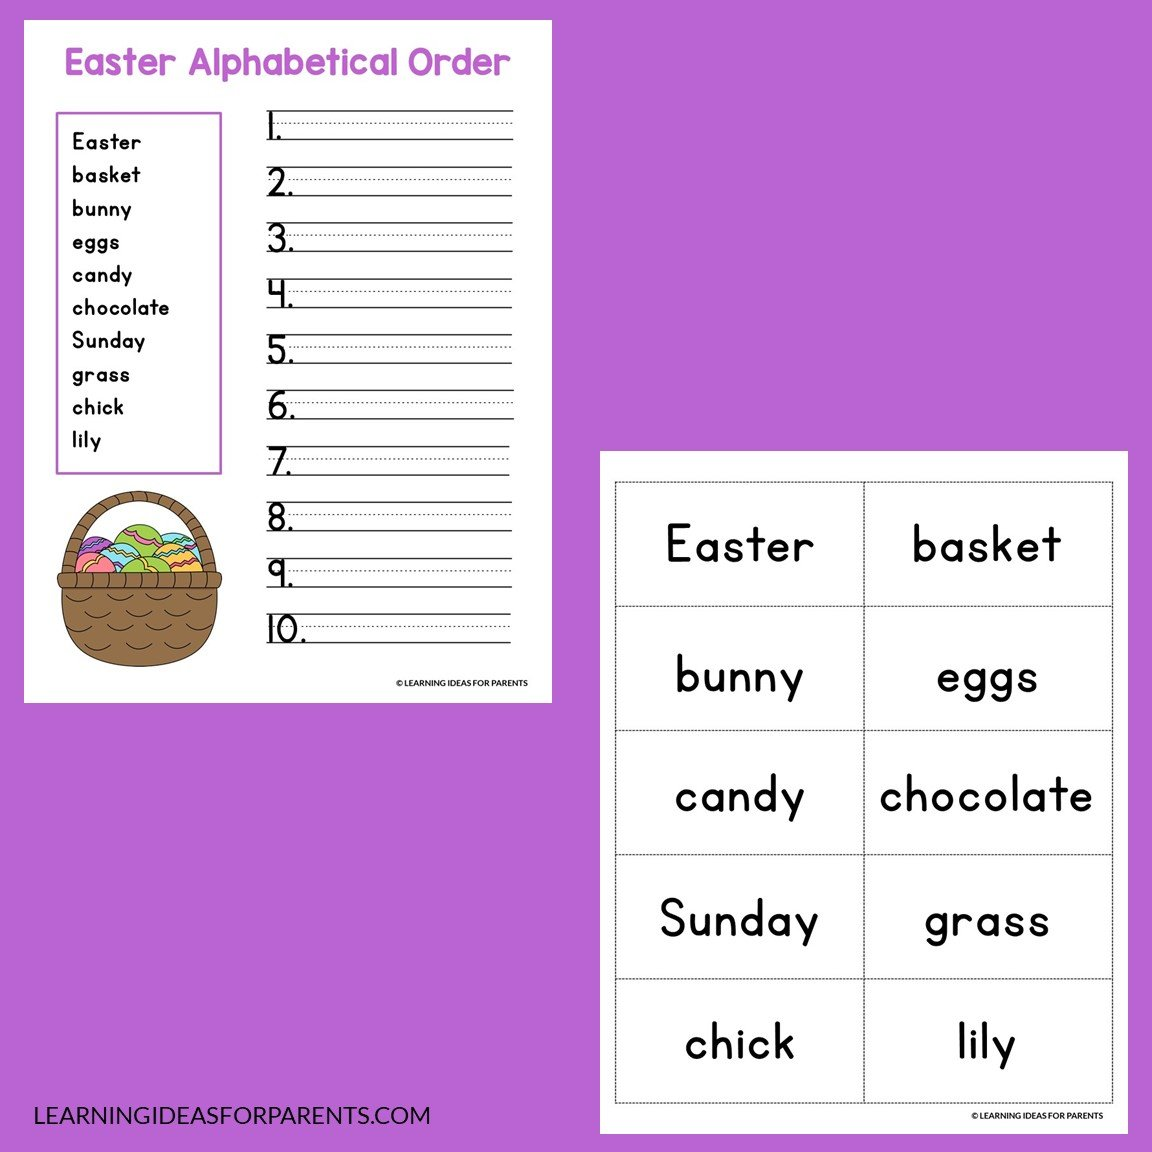 Free printable Easter alphabetical order activity